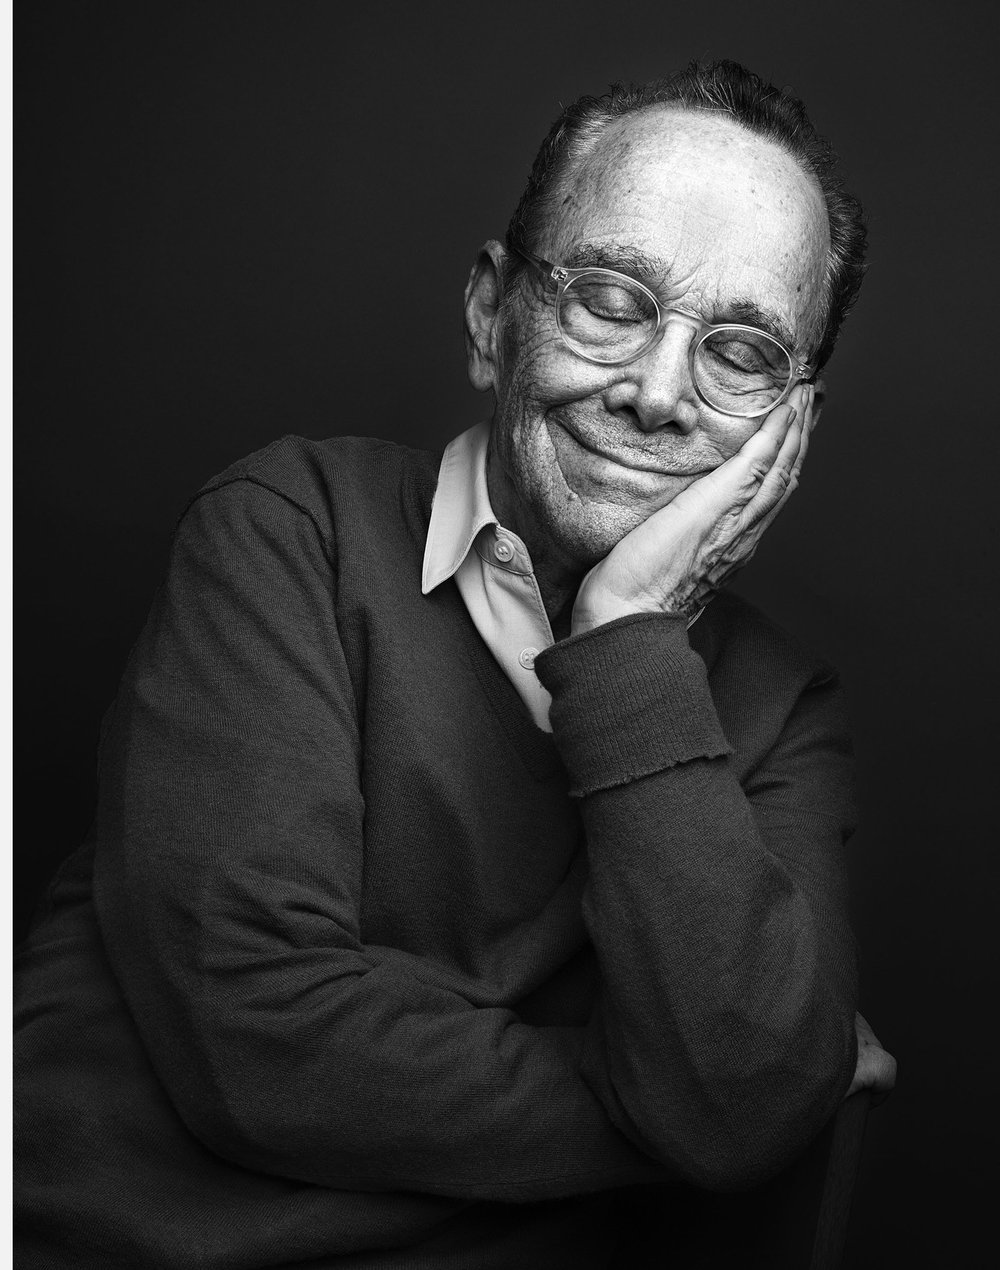 JOEL GREY | ACTOR, SINGER, DANCER